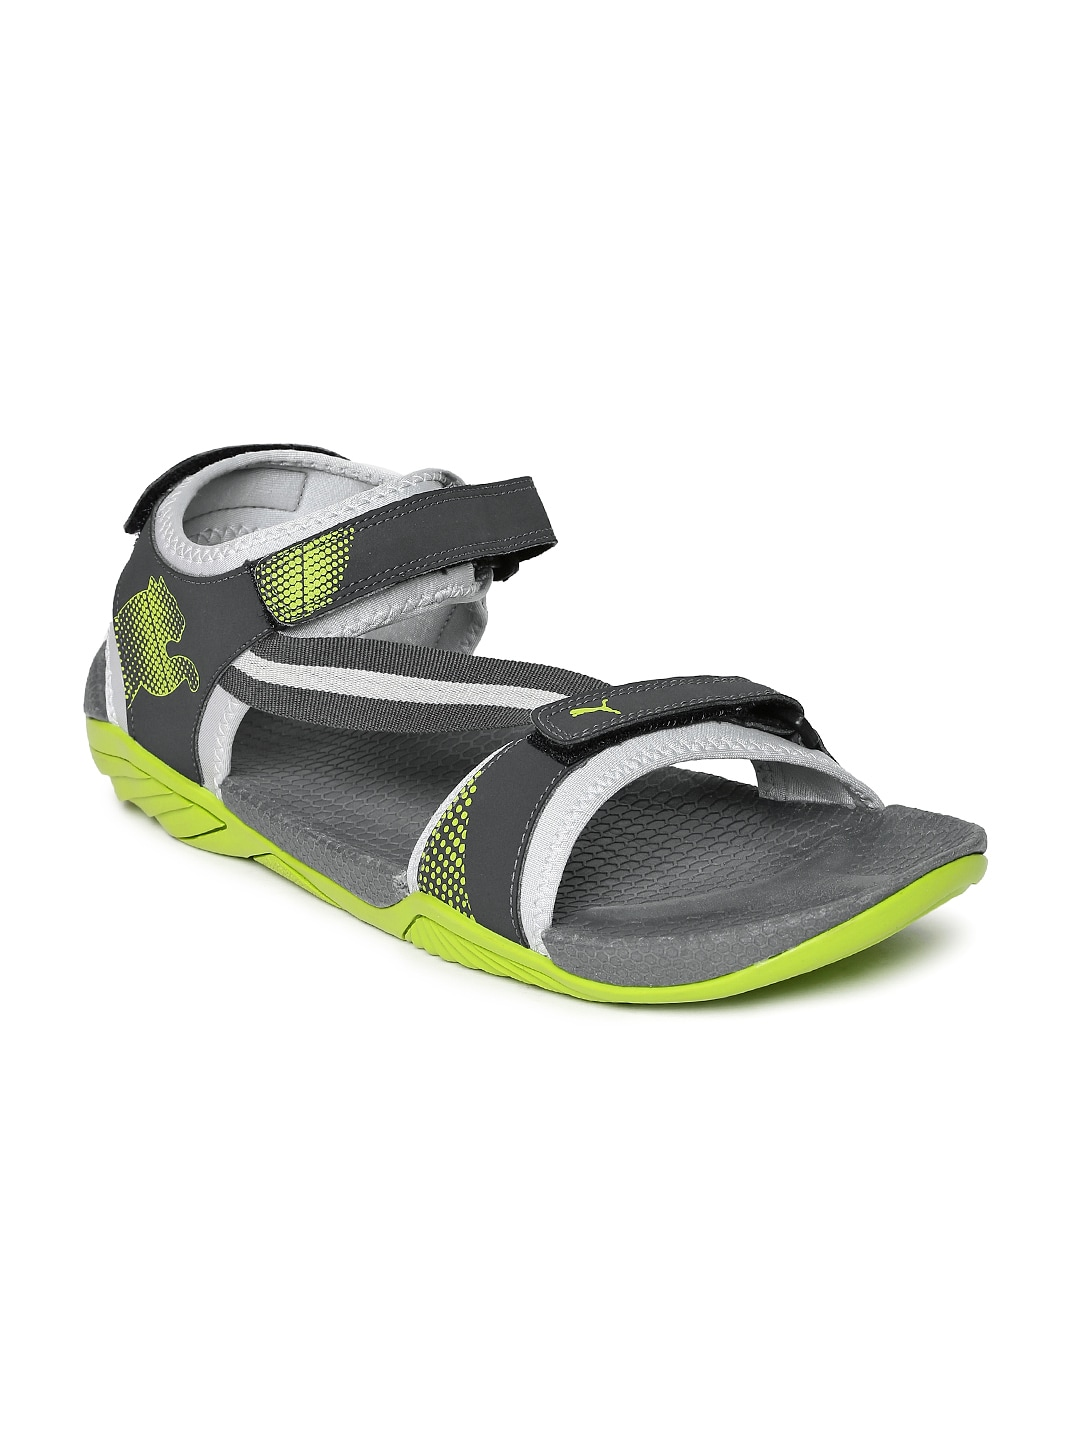 9fc5685be94 Puma 18936903 Men Grey And Neon Green K9 Sports Sandals- Price in India